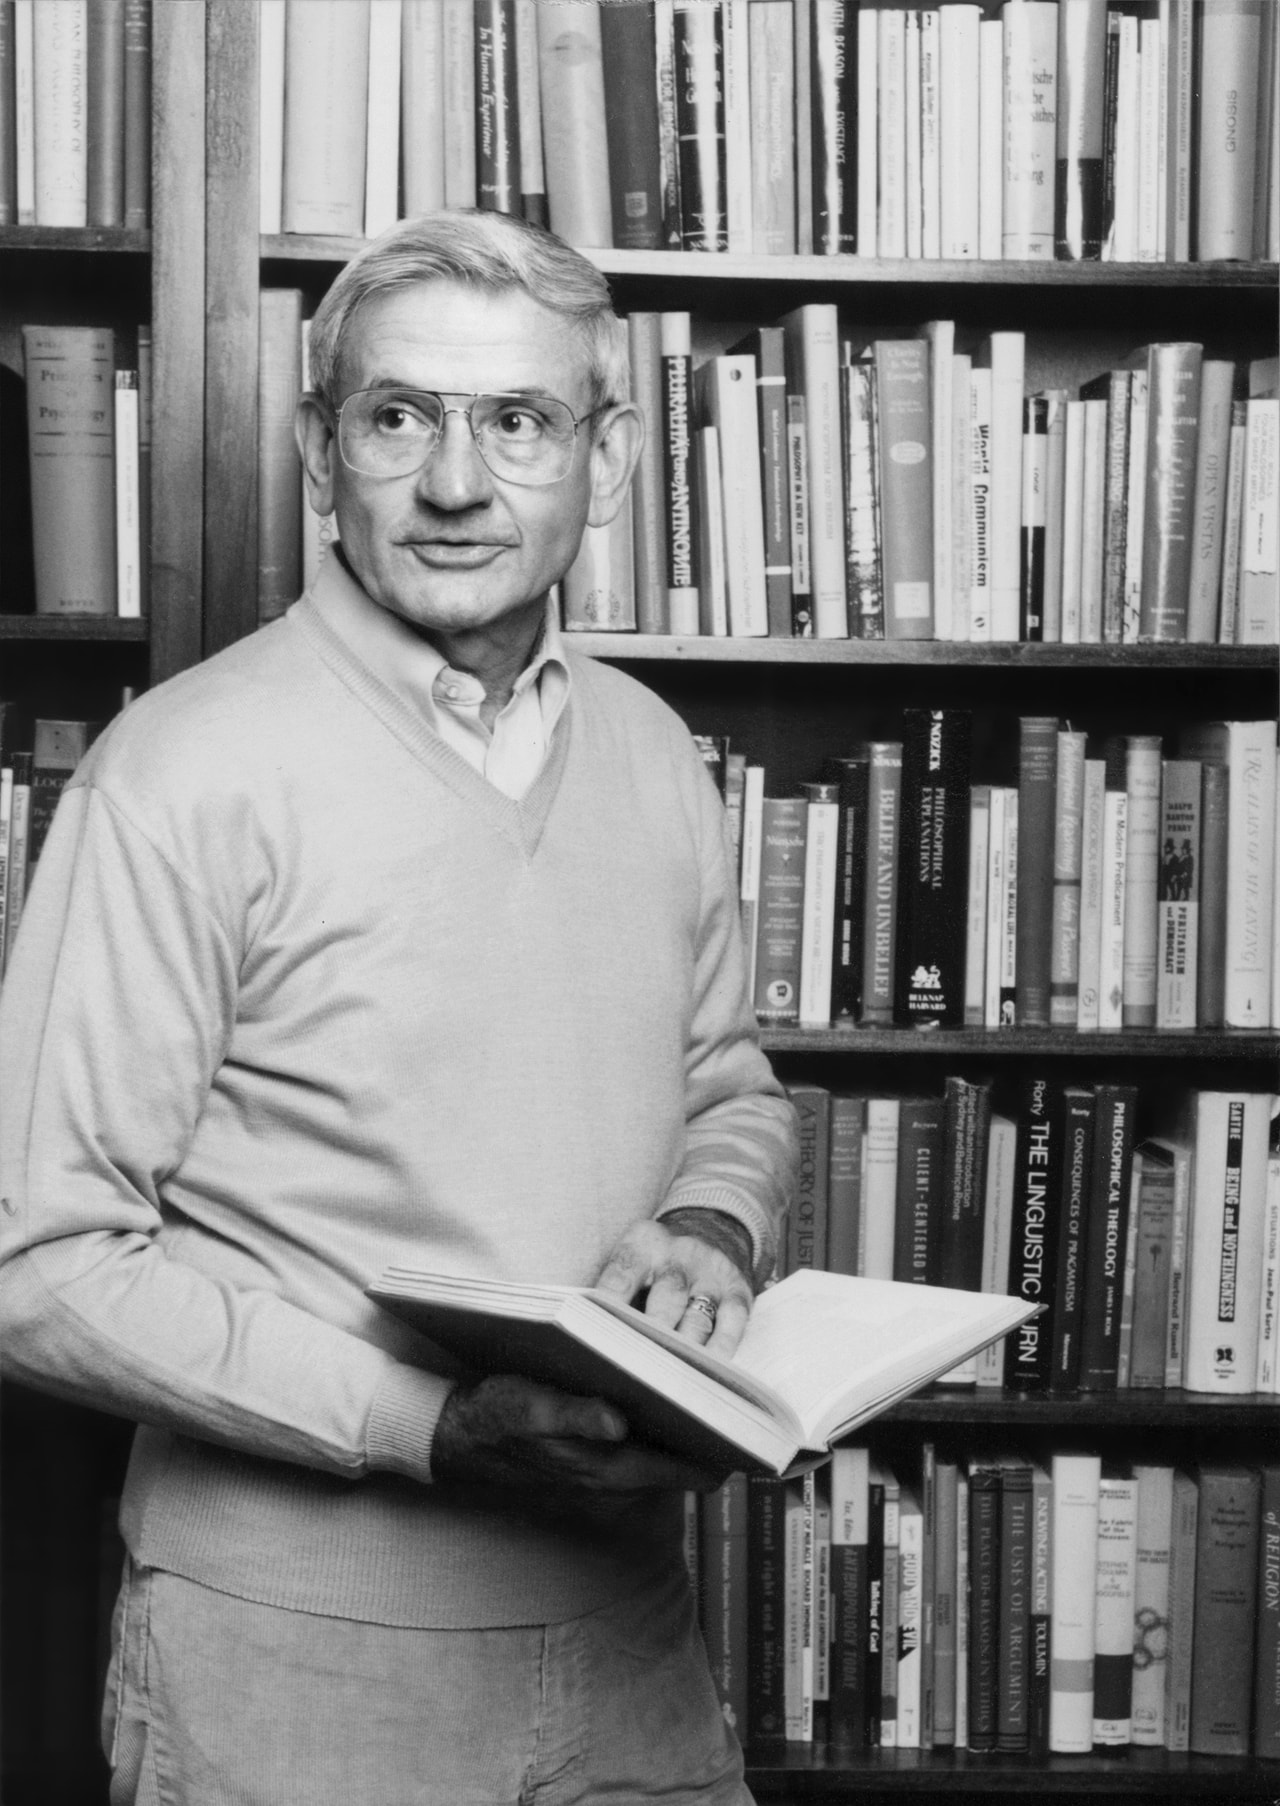 The Rev. Schubert Ogden, a longtime professor at Perkins School of Theology, died June 6 in Louisville, Colorado, near Boulder and Denver. He was 91. Photo from Wikimedia Commons, licensed under the Creative Commons Attribution-Share Alike 3.0 Unported license.